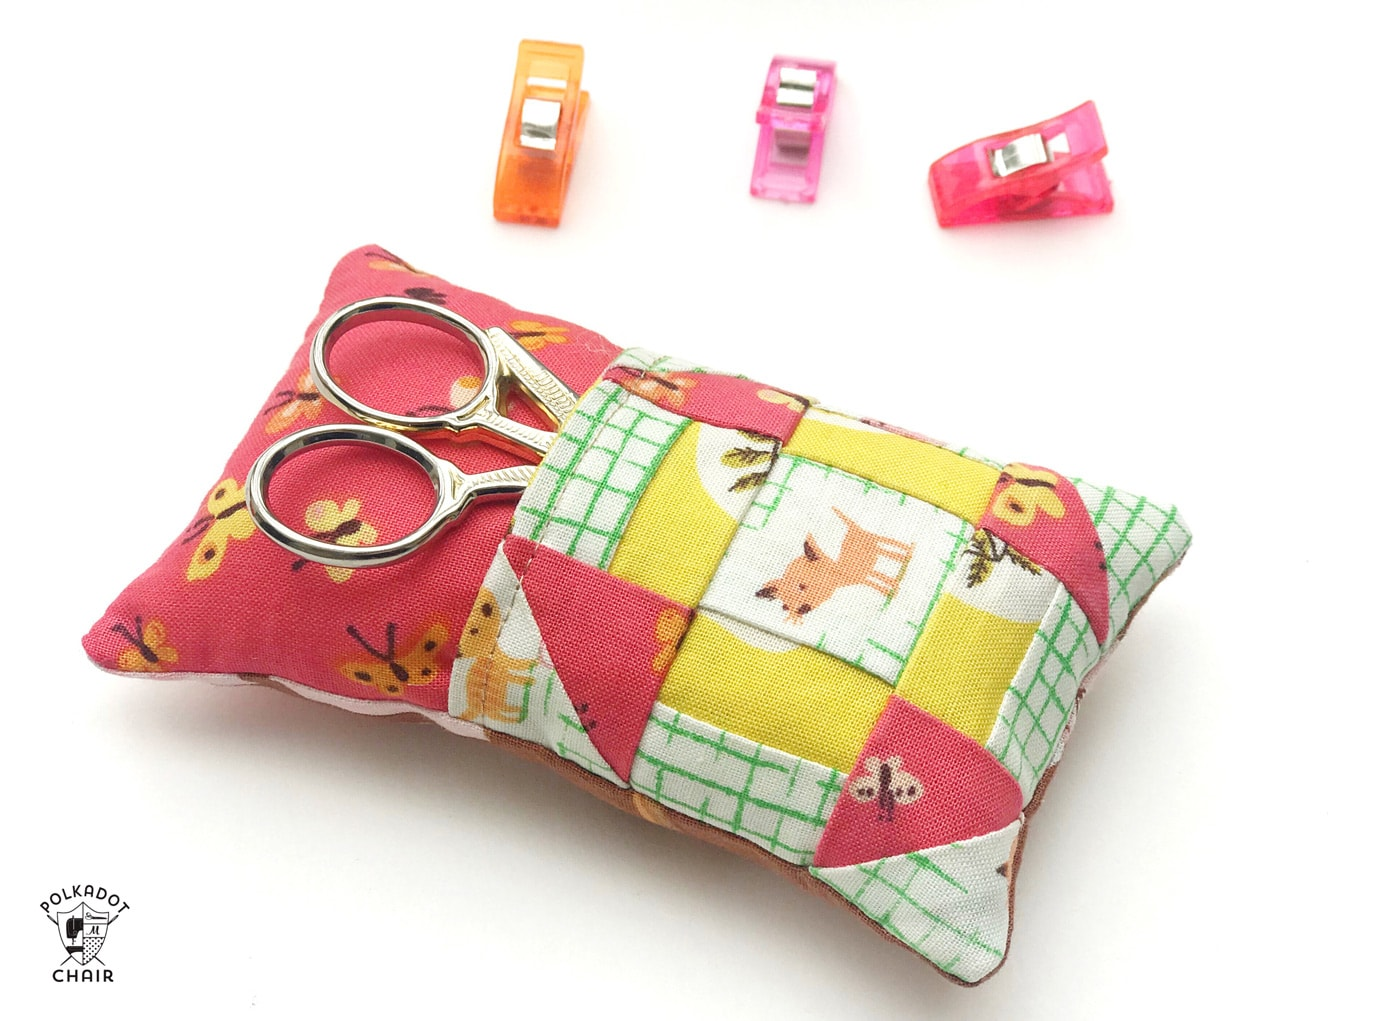 Learn how to make a cute pincushion with a pocket to hold your scissors! A free pincushion sewing tutorial- love the churn dash quilt block addition! #pincushions #DIYpincusions #pincushionstosew #pincushionpatterns #Cutepincushions #sewingtutorial #sewing